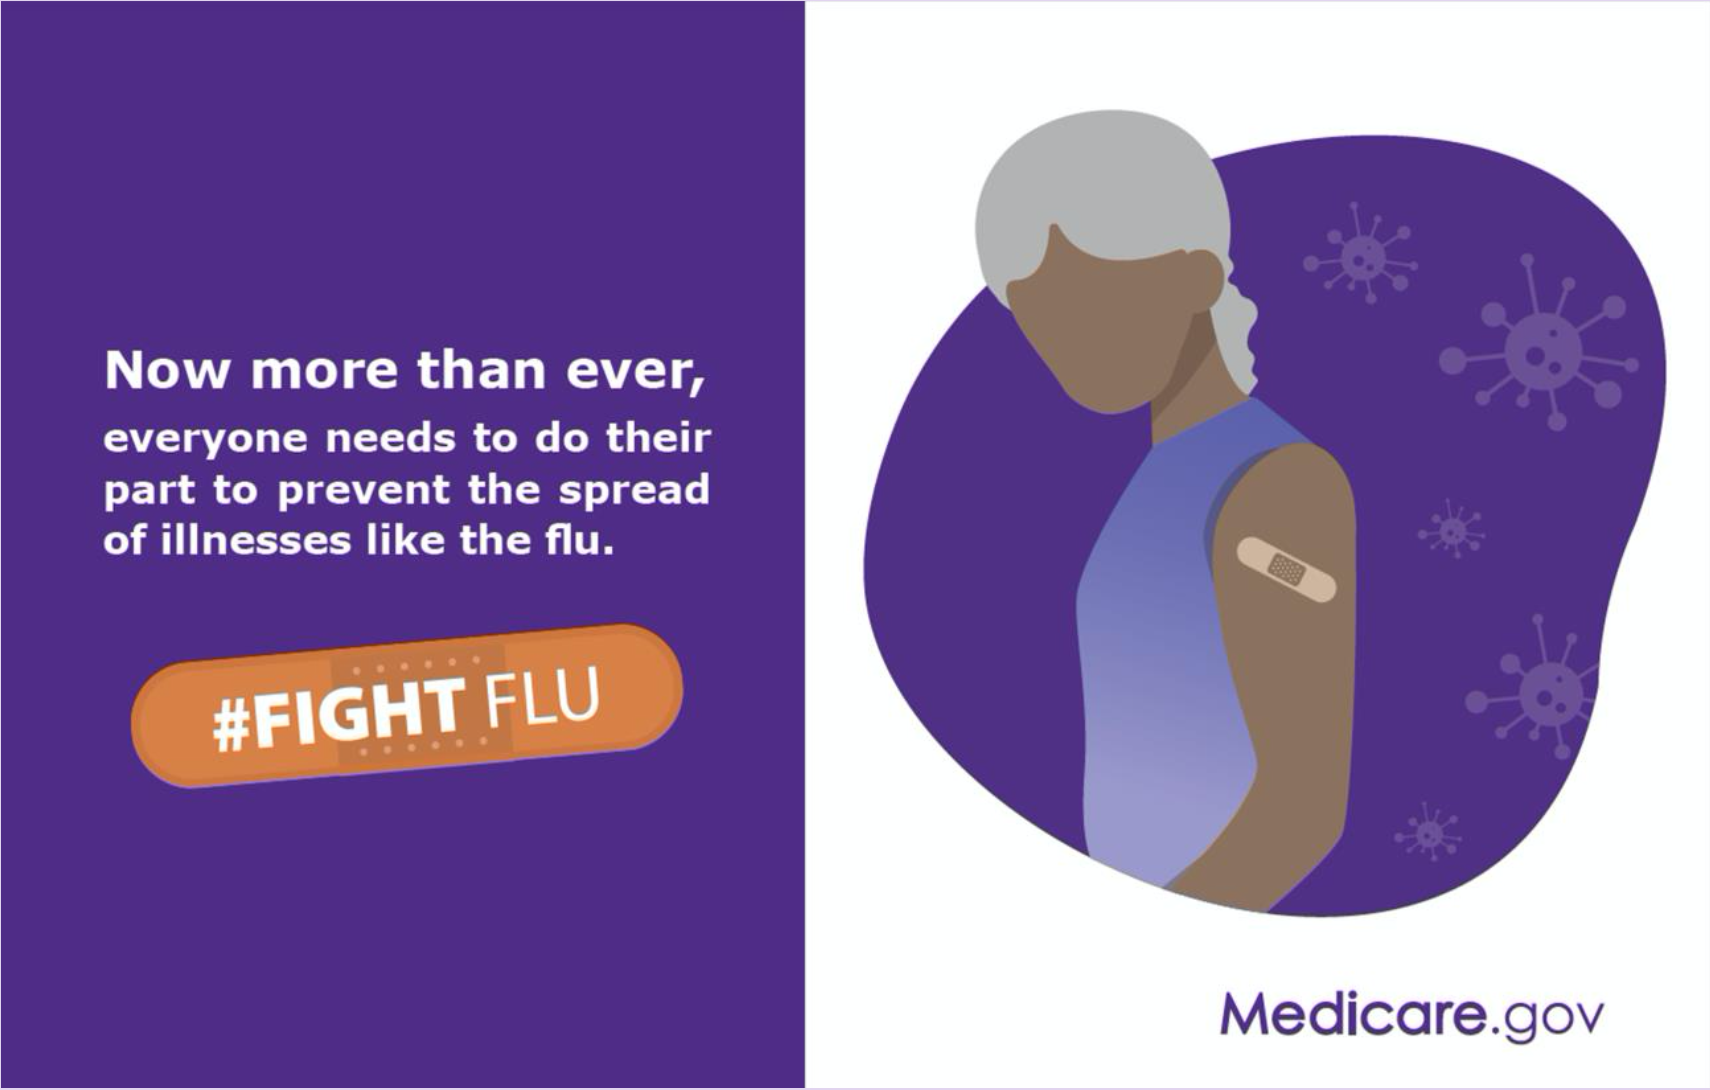 #fightflu now more than ever